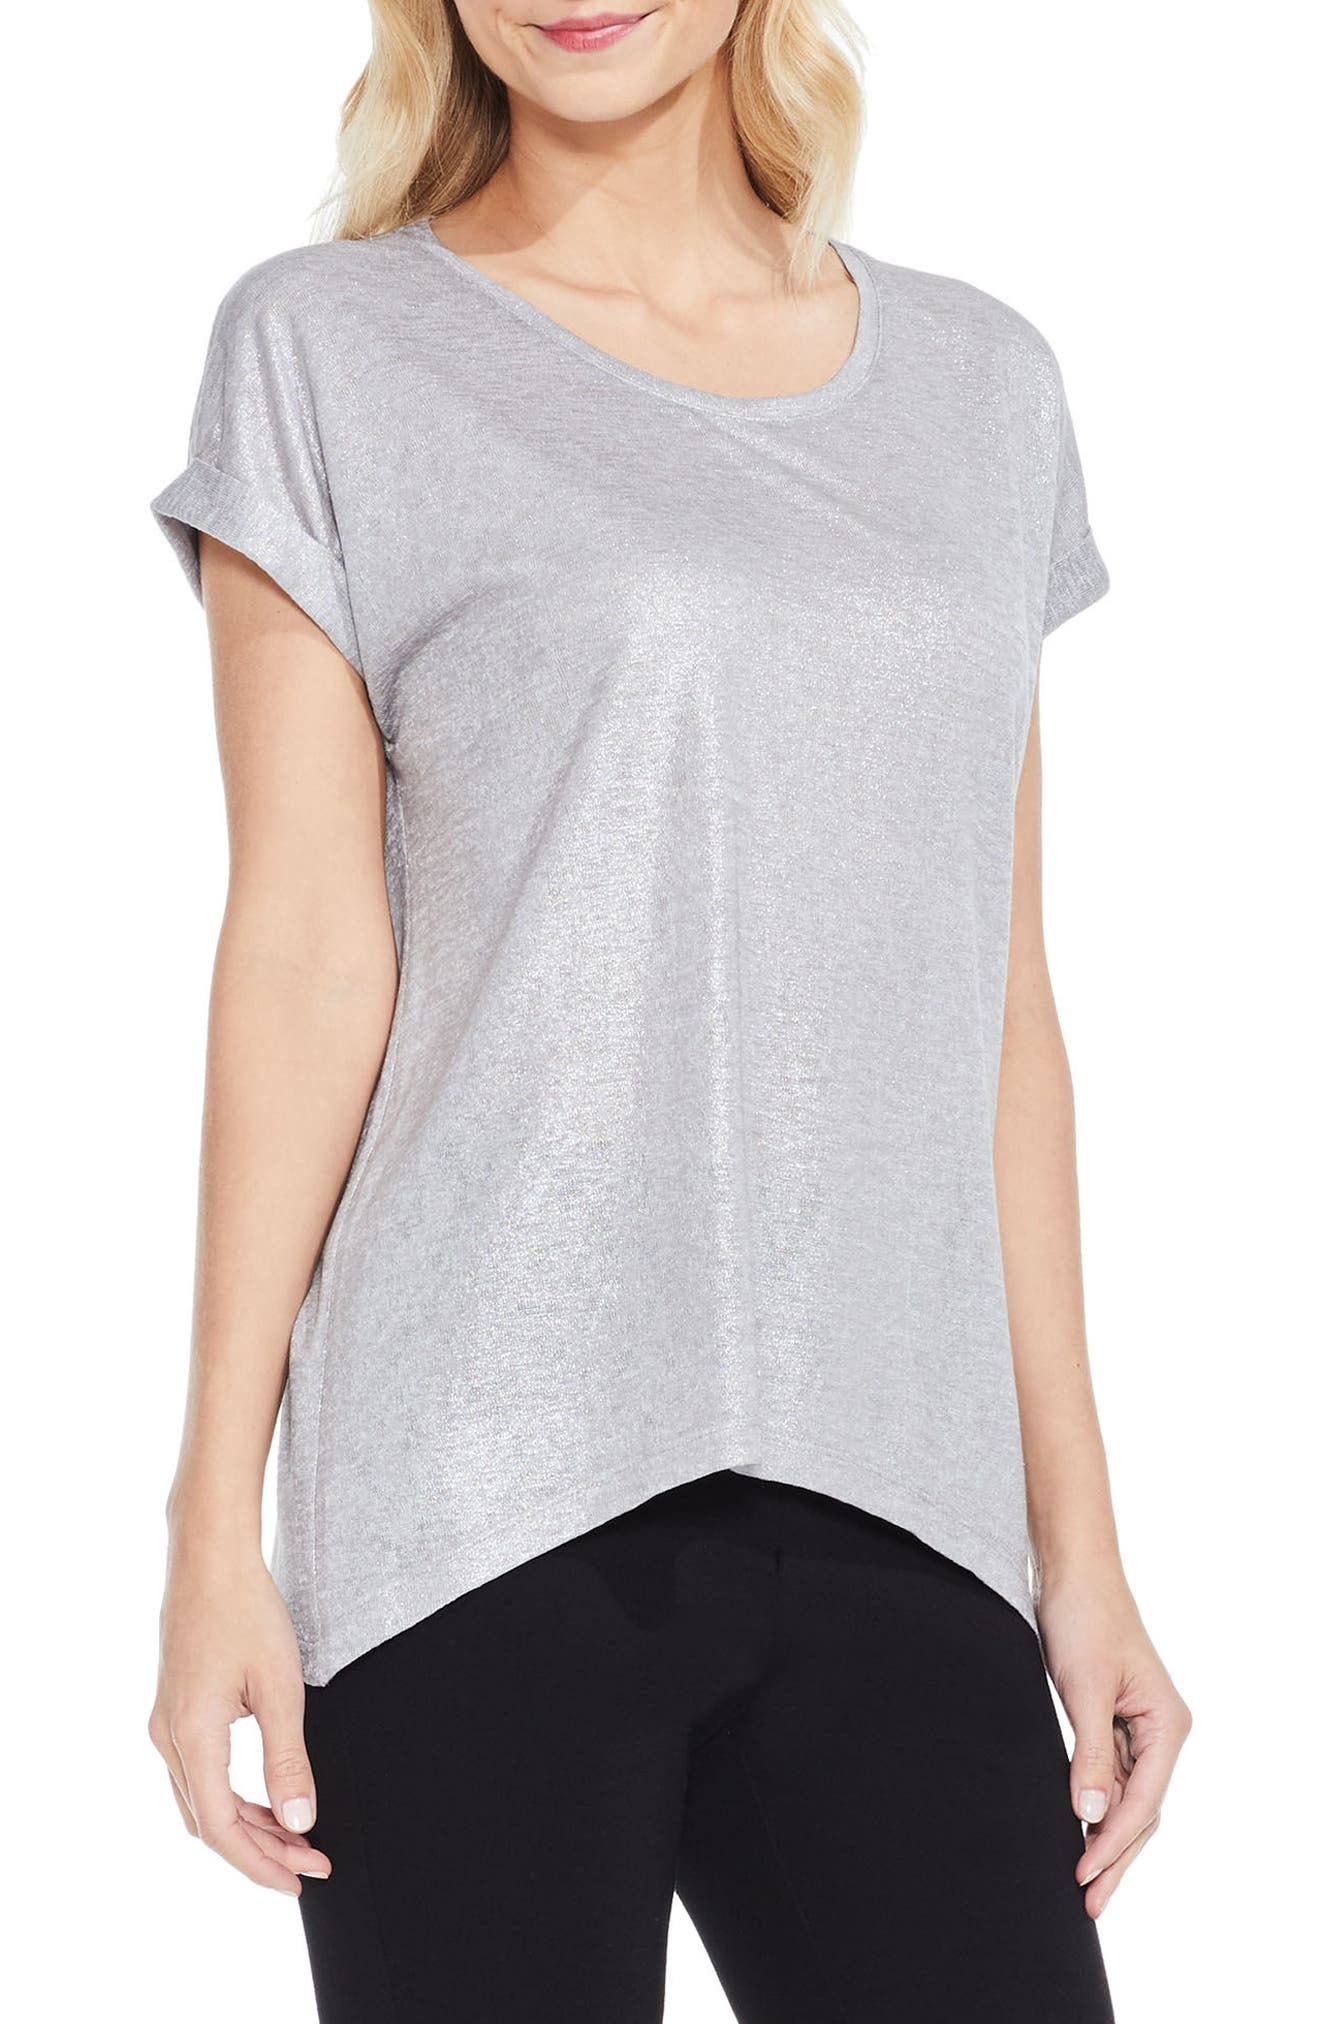 Alternate Image 1 Selected - Two by Vince Camuto Foiled Knit Tee